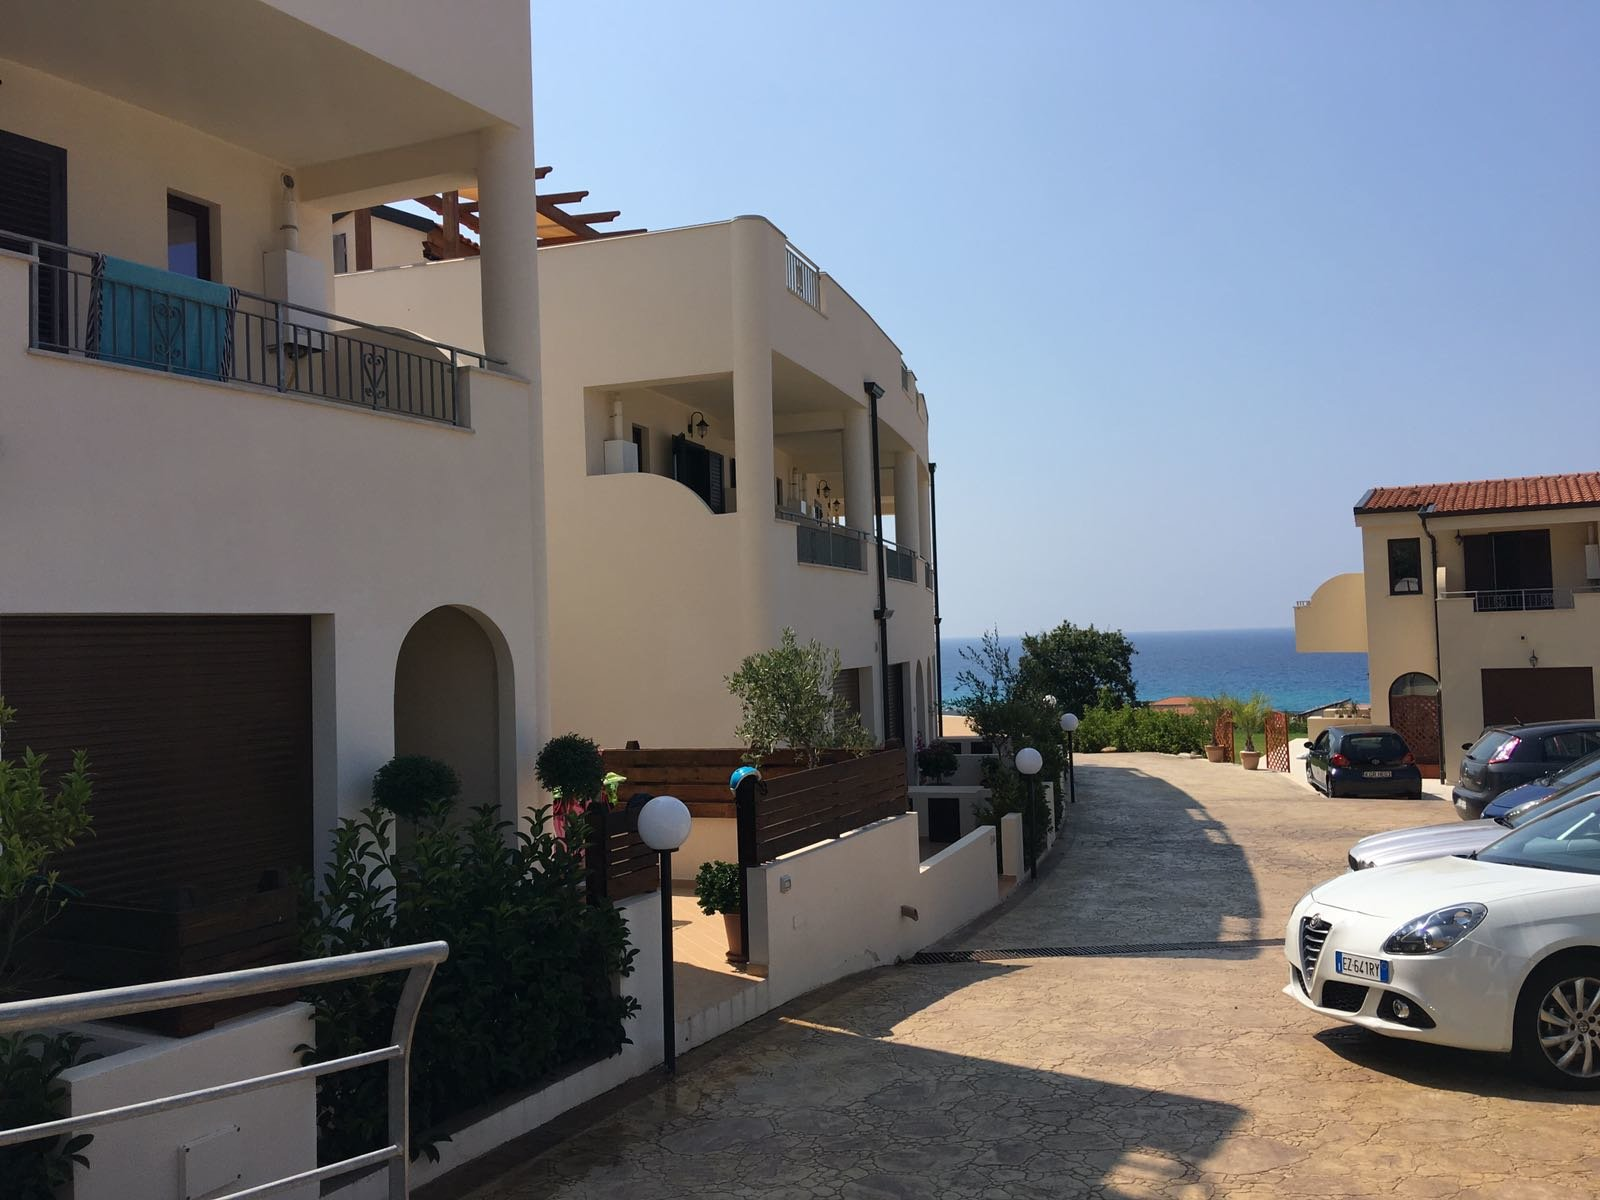 Exclusive townhouse with pool and parking - perfect rental investment